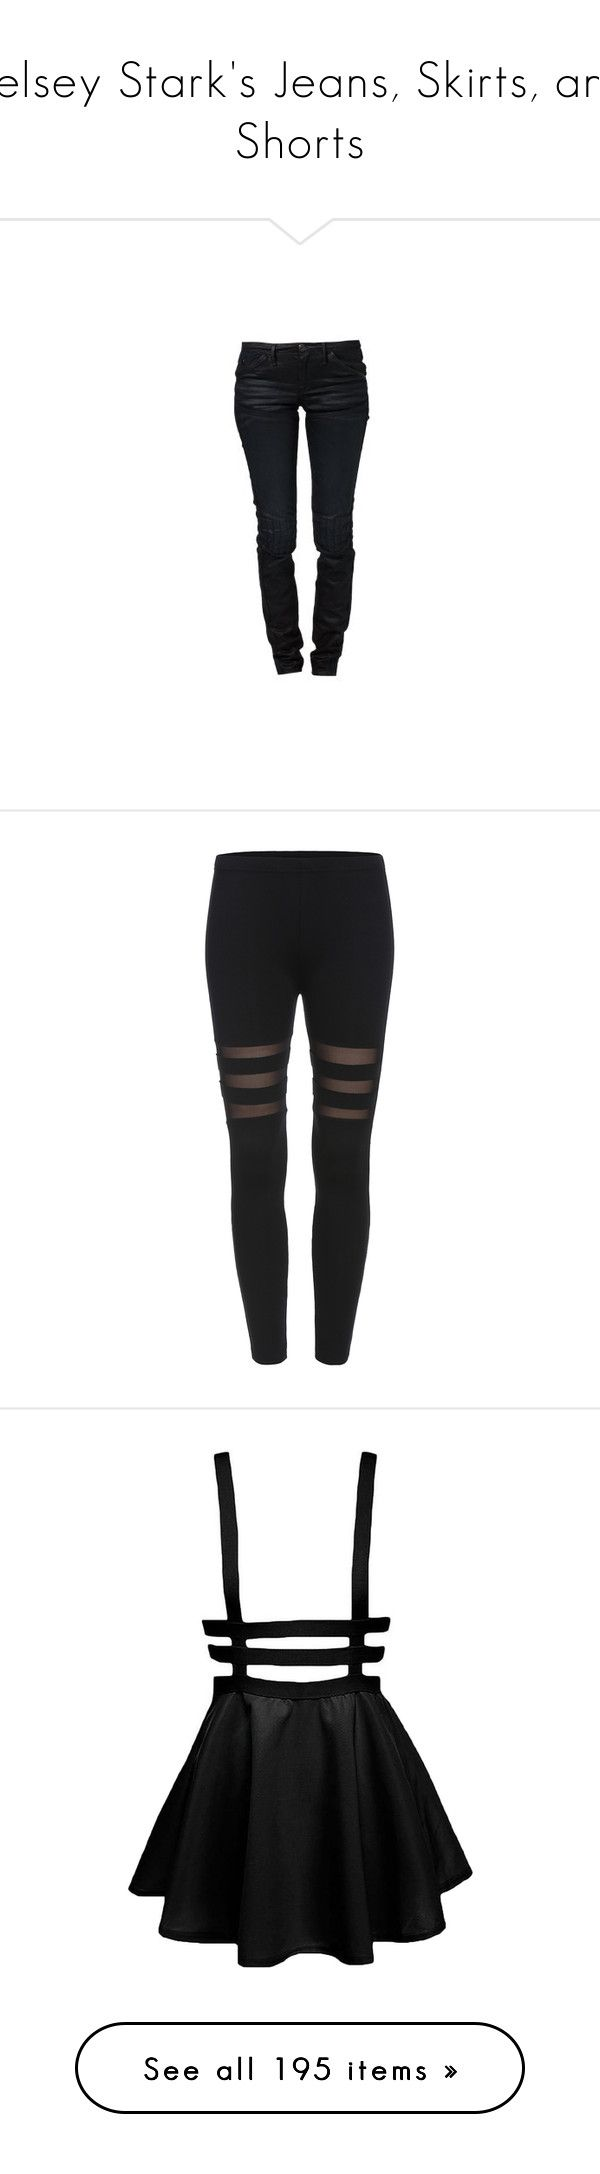 """""""Kelsey Stark's Jeans, Skirts, and Shorts"""" by nerdbucket ❤ liked on Polyvore featuring jeans, pants, g-star raw, g star raw jeans, cartoon jeans, slim fit jeans, comic book, leggings, bottoms and black"""